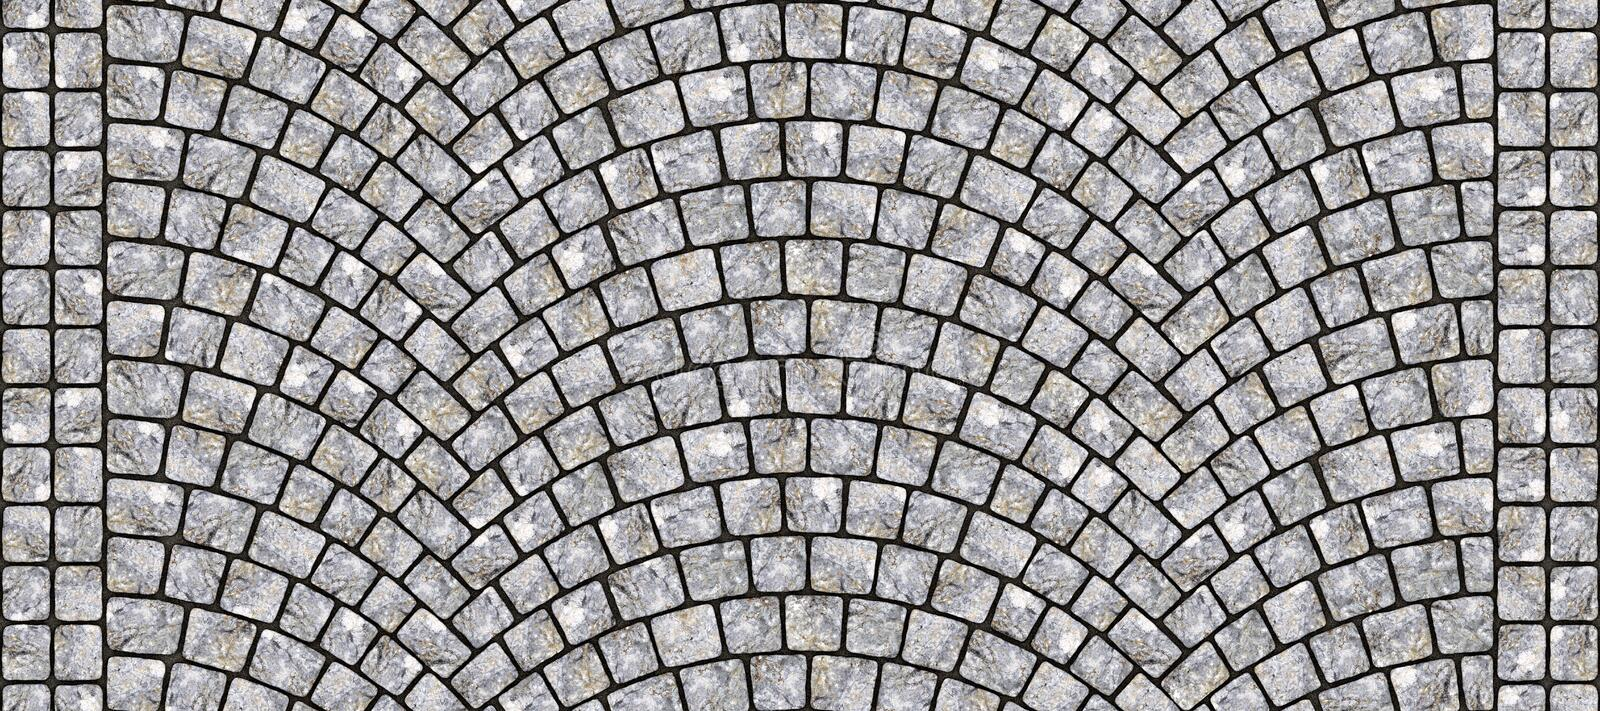 Road curved cobblestone texture 101. Cobblestone arched pavement road with edge courses at the sidewalk. Seamless tileable repeating 3D rendering texture royalty free illustration